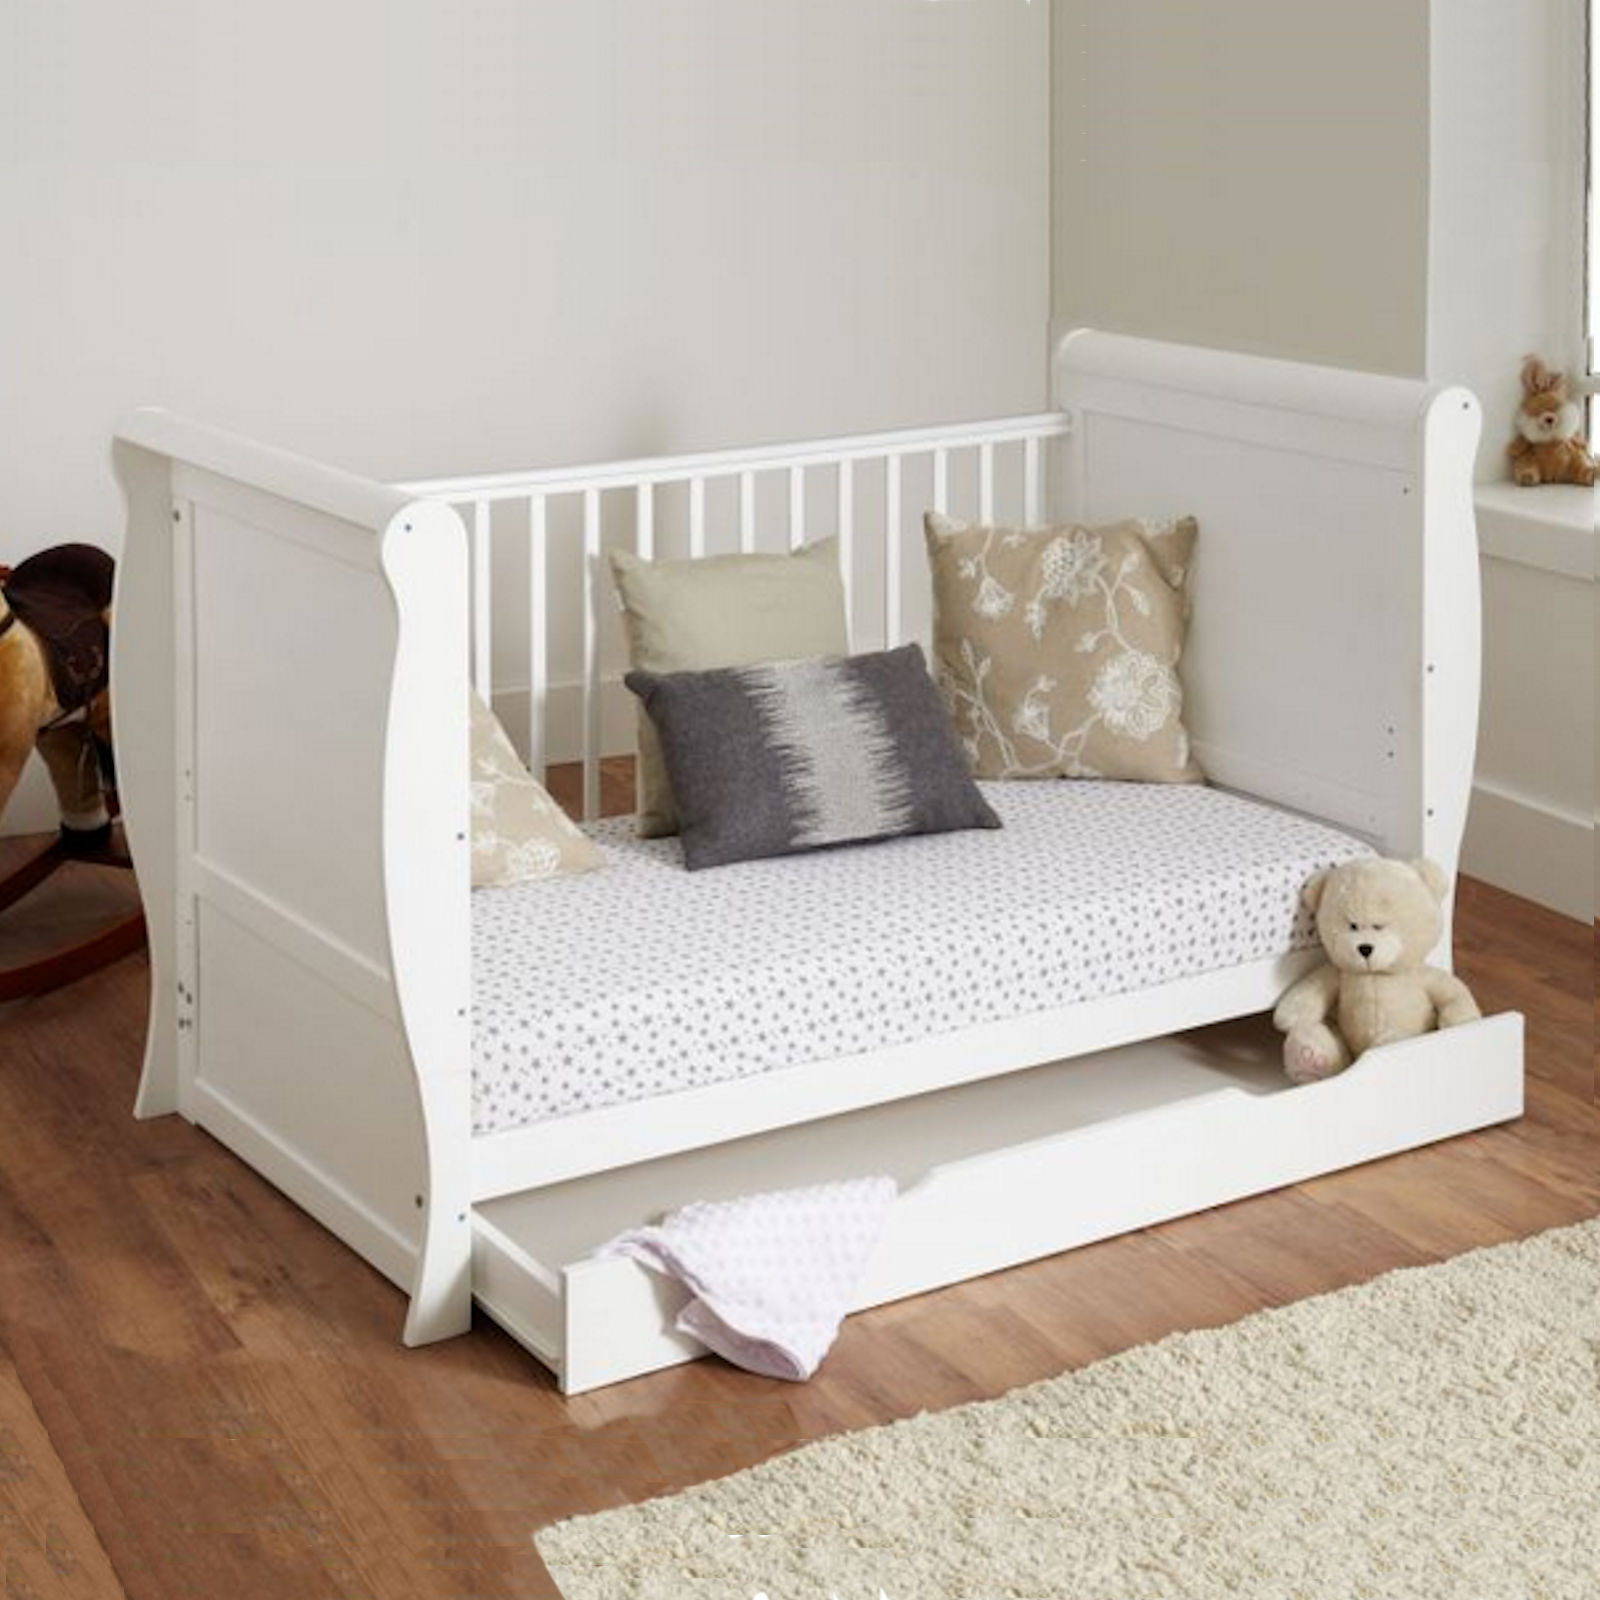 Includes 4 Inch Deluxe Foam Mattress ? Storage Drawer ? Easily Converts to Junior Bed u0026 Sofa ? & 4BABY WHITE SLEIGH COT BED COTBED WITH UNDER BED STORAGE DRAWER ...